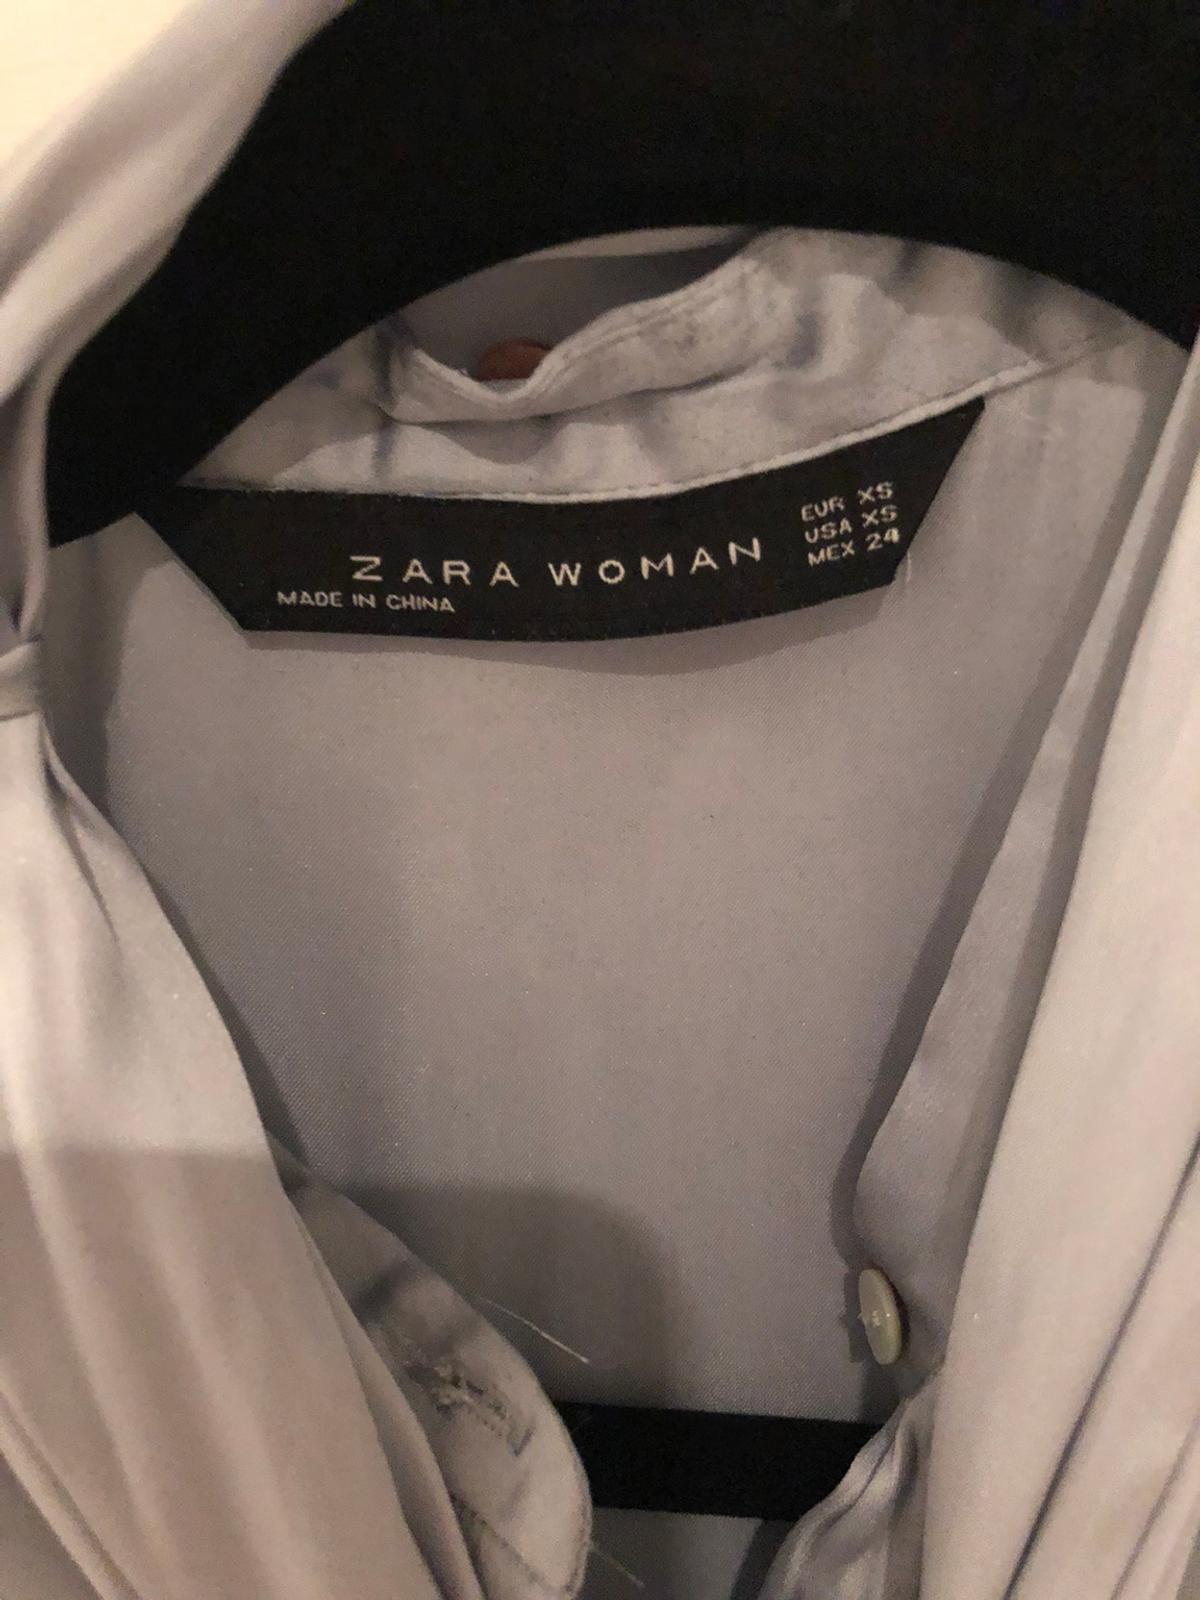 I'm selling here a fabulous ZARA WOMAN light blue shirt with detachable tie/bow. Size XS. In very good condition. Happy to post. Any questions please ask.